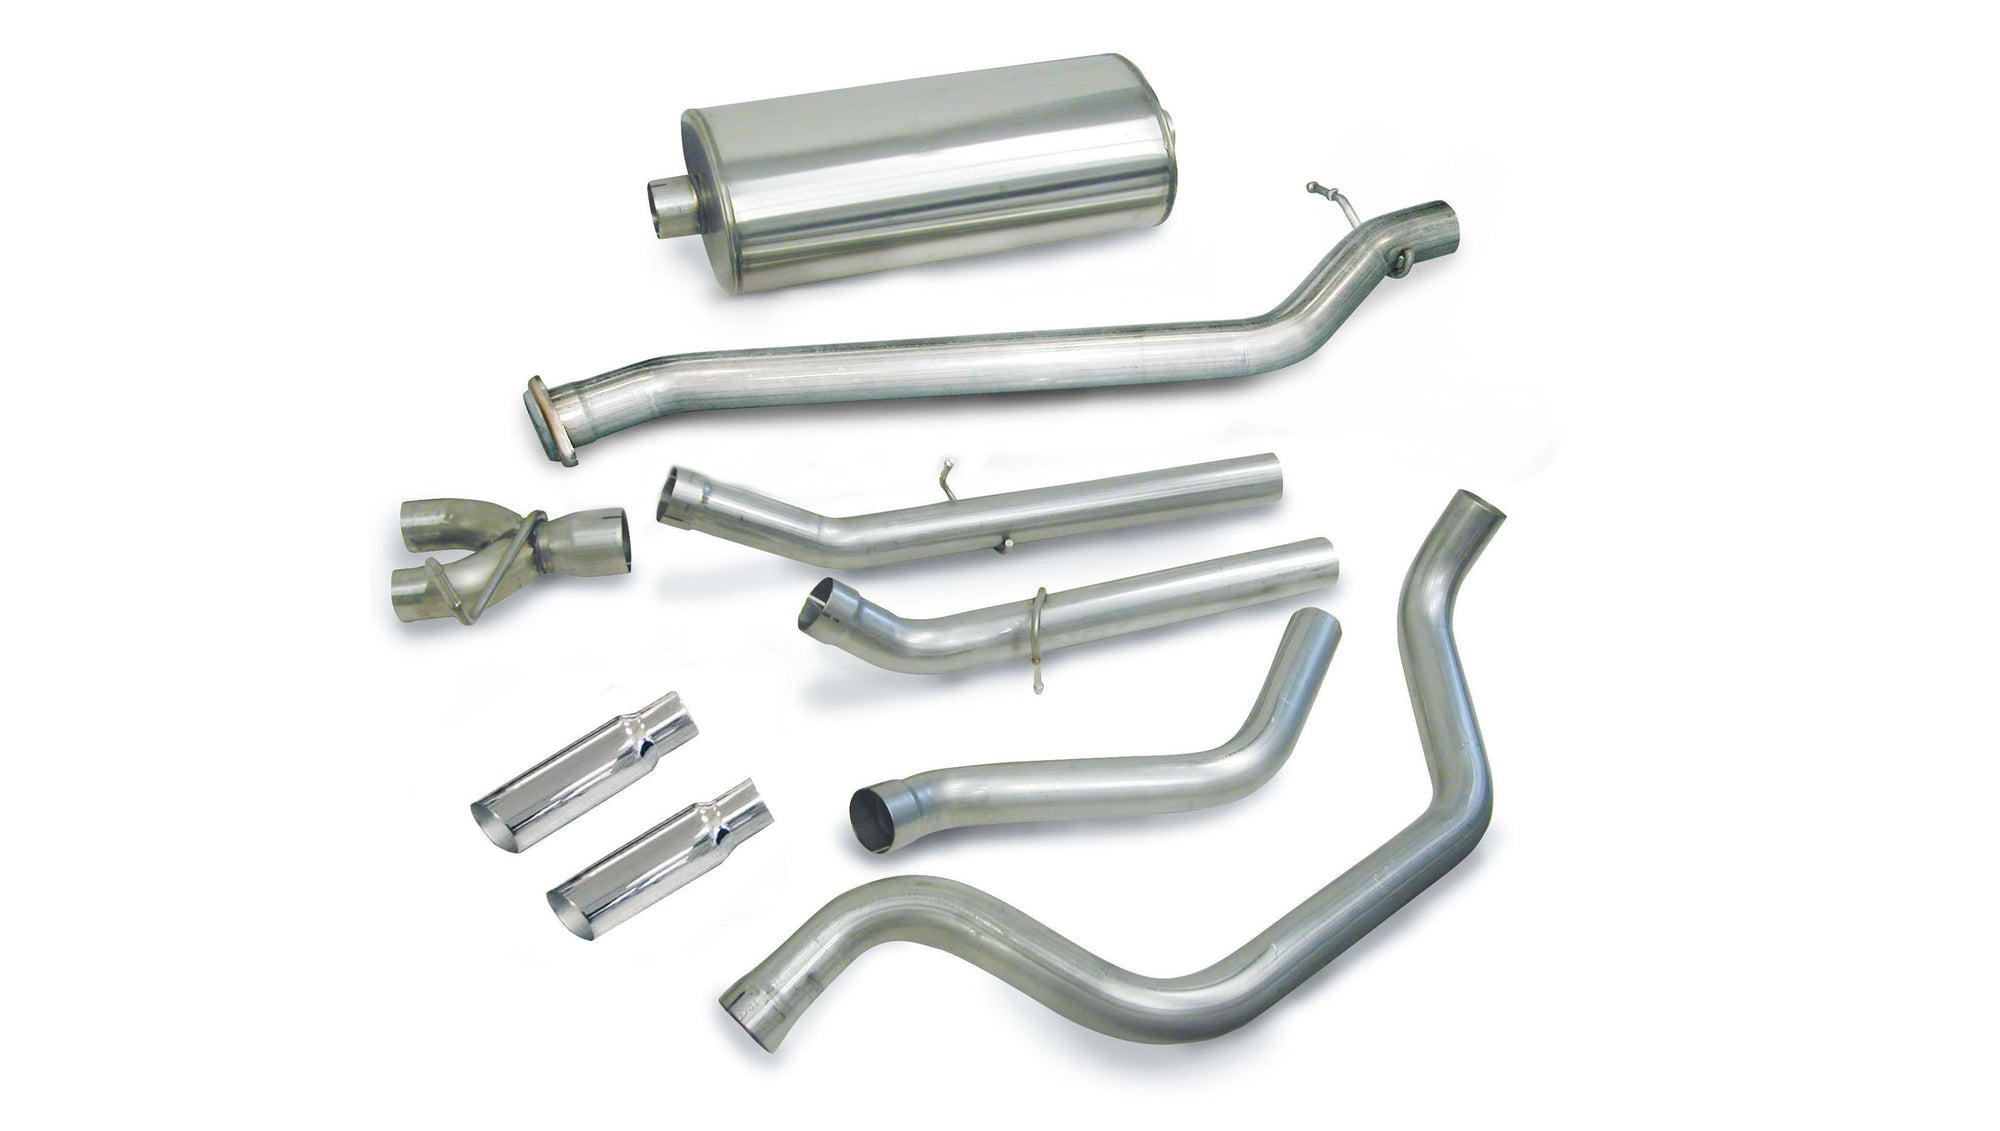 "dB Cat-Back Exhaust Polished / Sport / Dual Rear - Single 4in 1999-2006 Chevrolet Silverado, GMC Sierra 4.8L, 5.3L, 6.0L V8, 3.0"" Dual Rear Exit Catback Exhaust System with 4.0"" Tips (24273) Sport Sound Level"